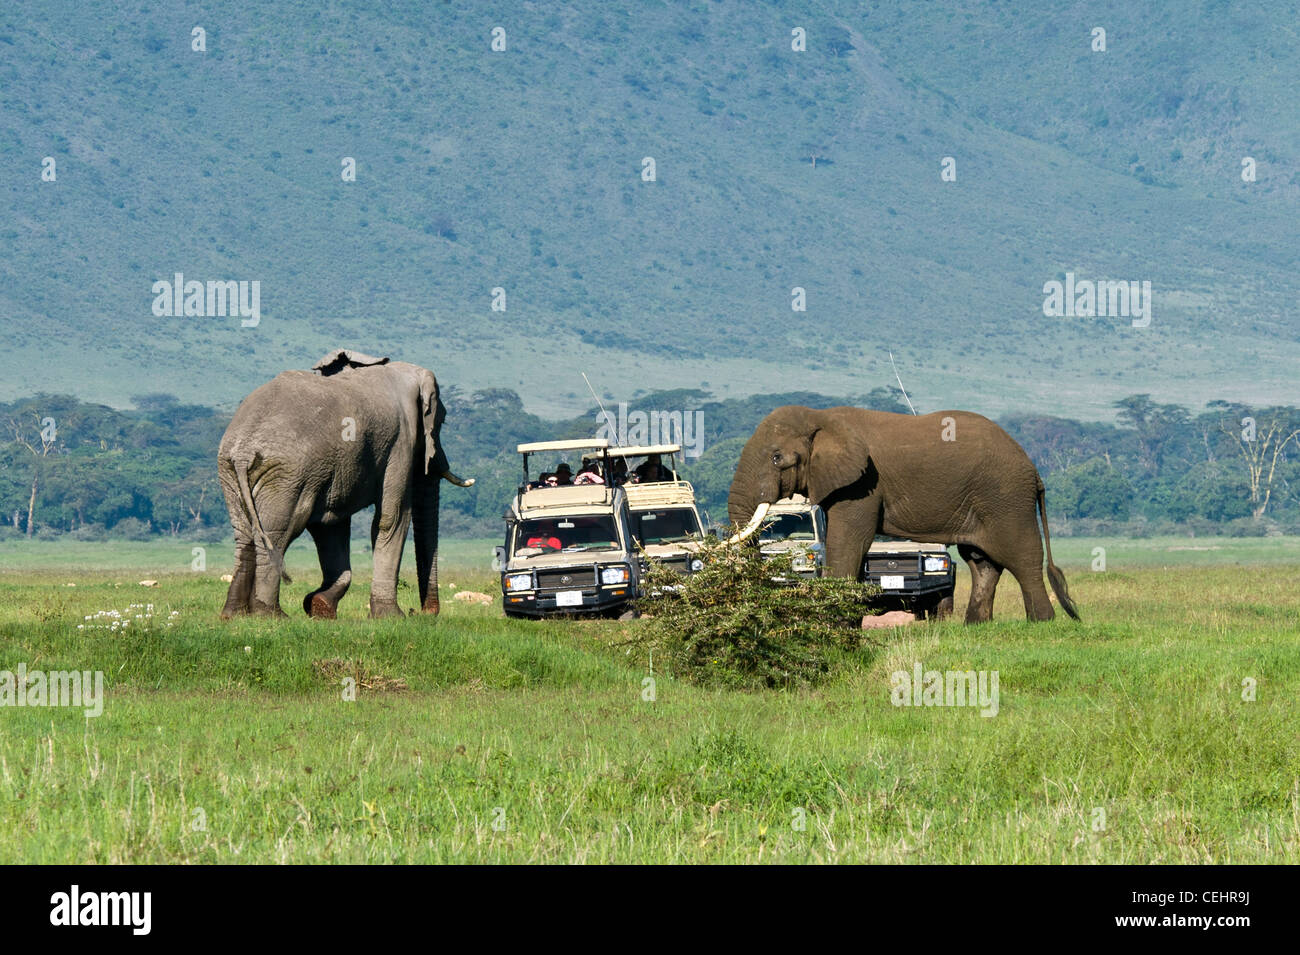 Tourists on safari watching two elephants (Loxodonta africana) taking measure of each other Ngorongoro Crater Tanzania Stock Photo